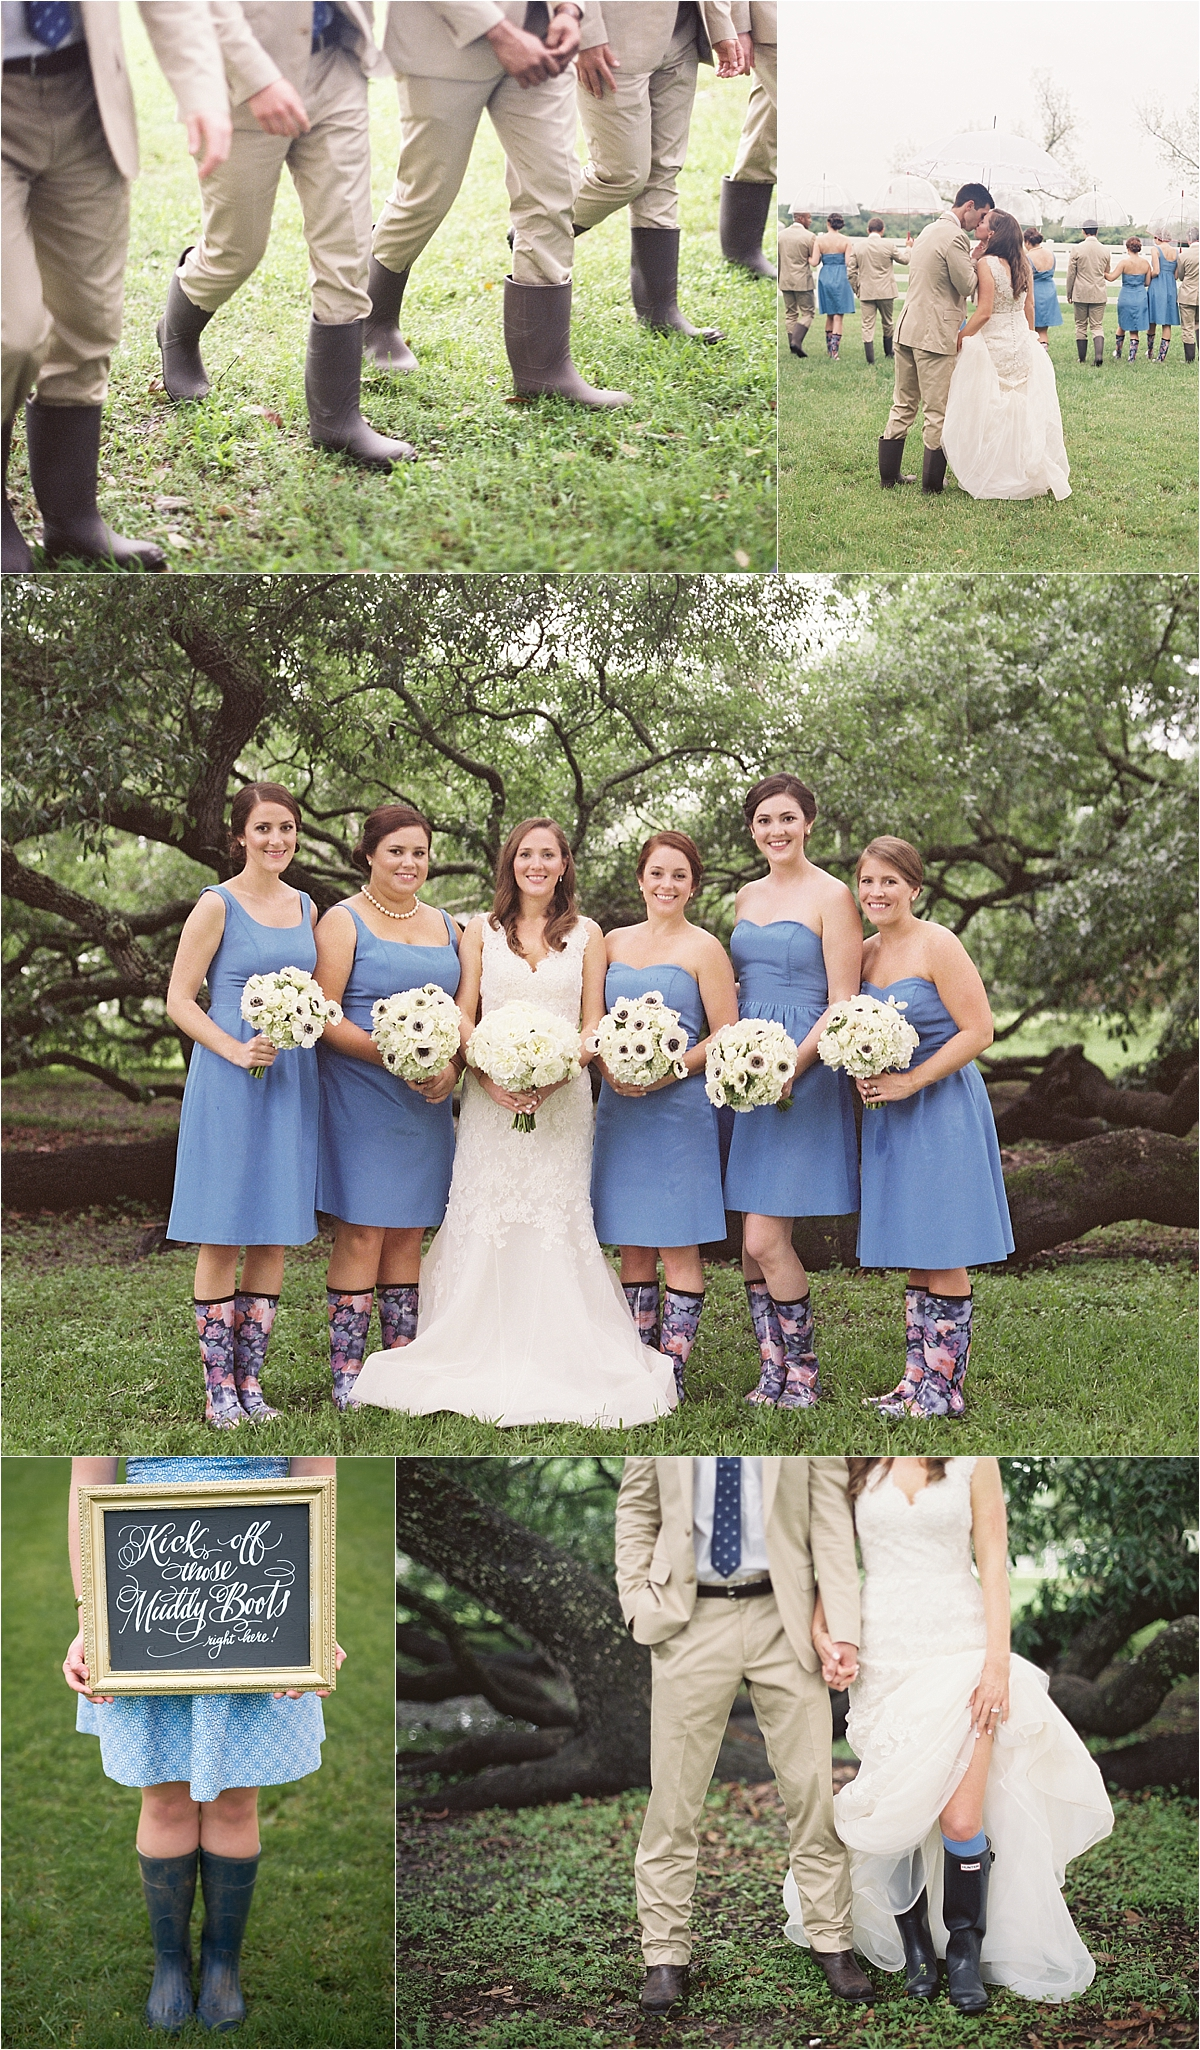 Groomsmen in khaki and rain boots, bridesmaids in short blue dresses and colorful rain boots